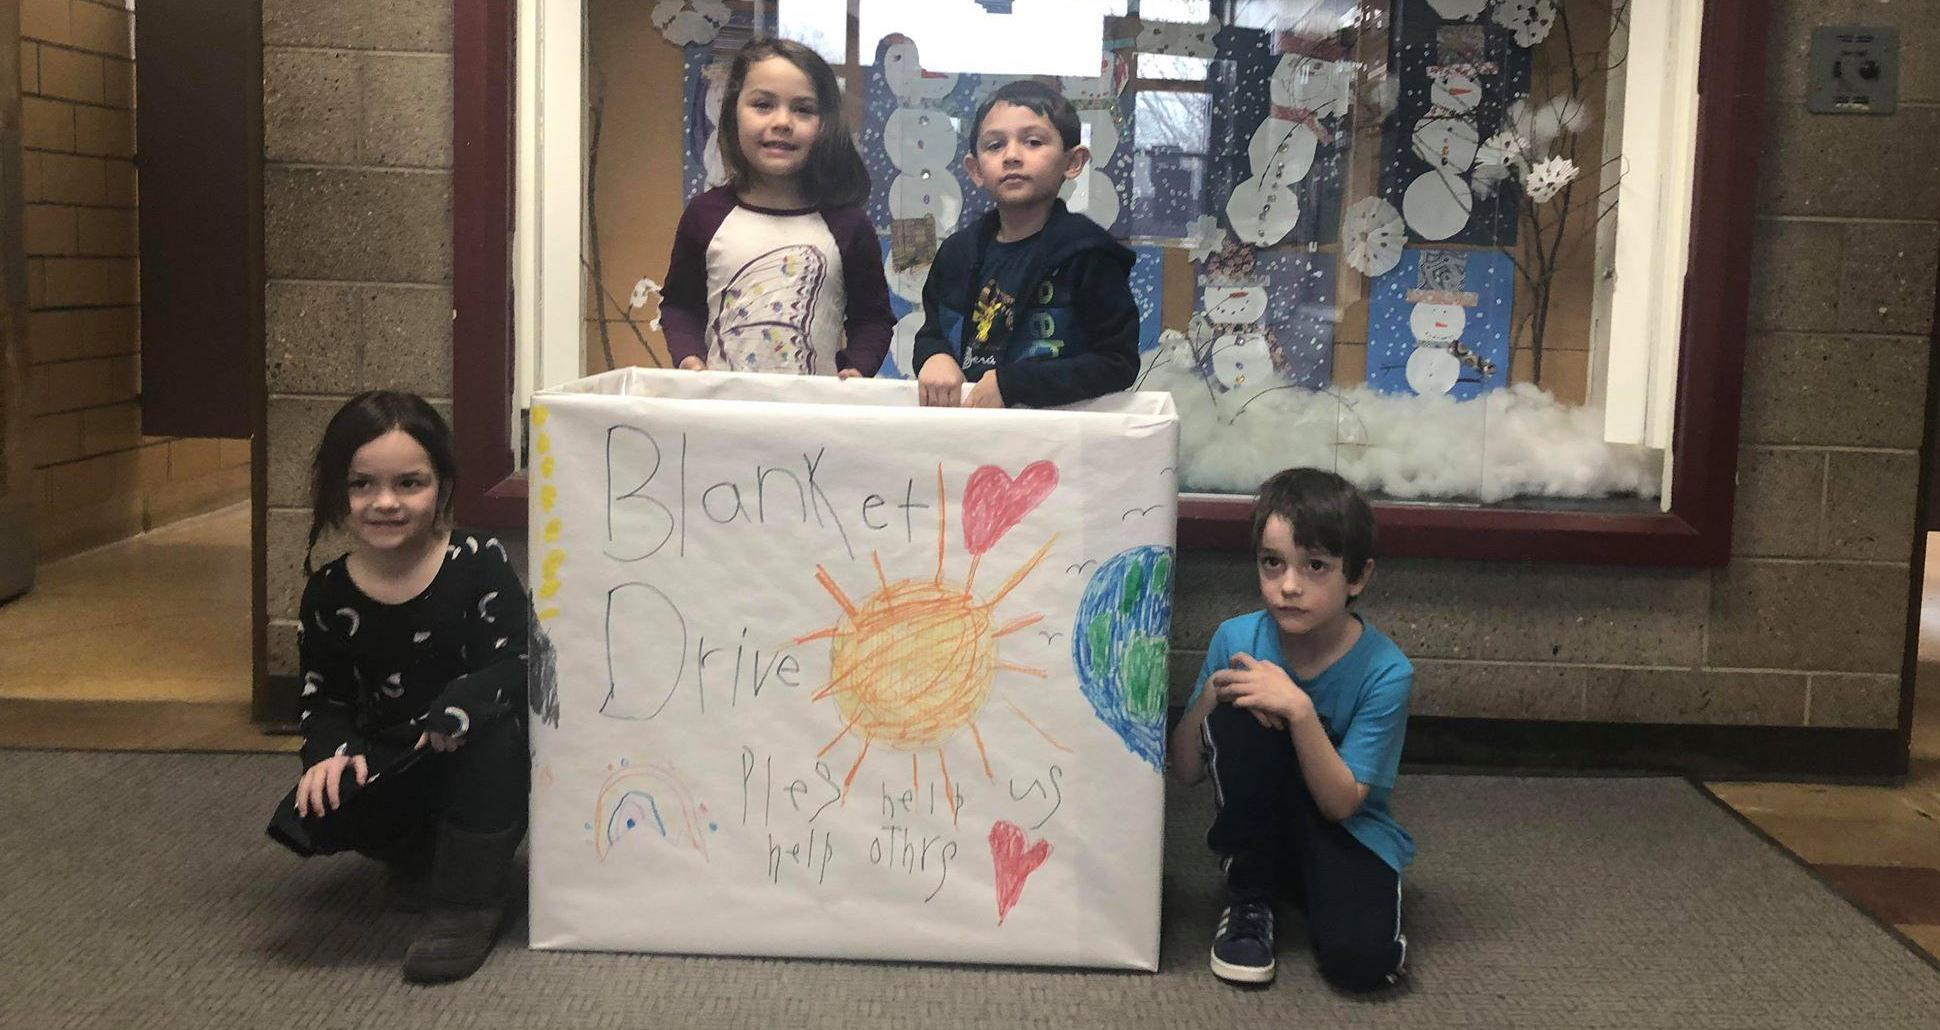 """4 kindergarten students posing with a collection box labeled """"Blanket Drive: Please help us help others"""""""